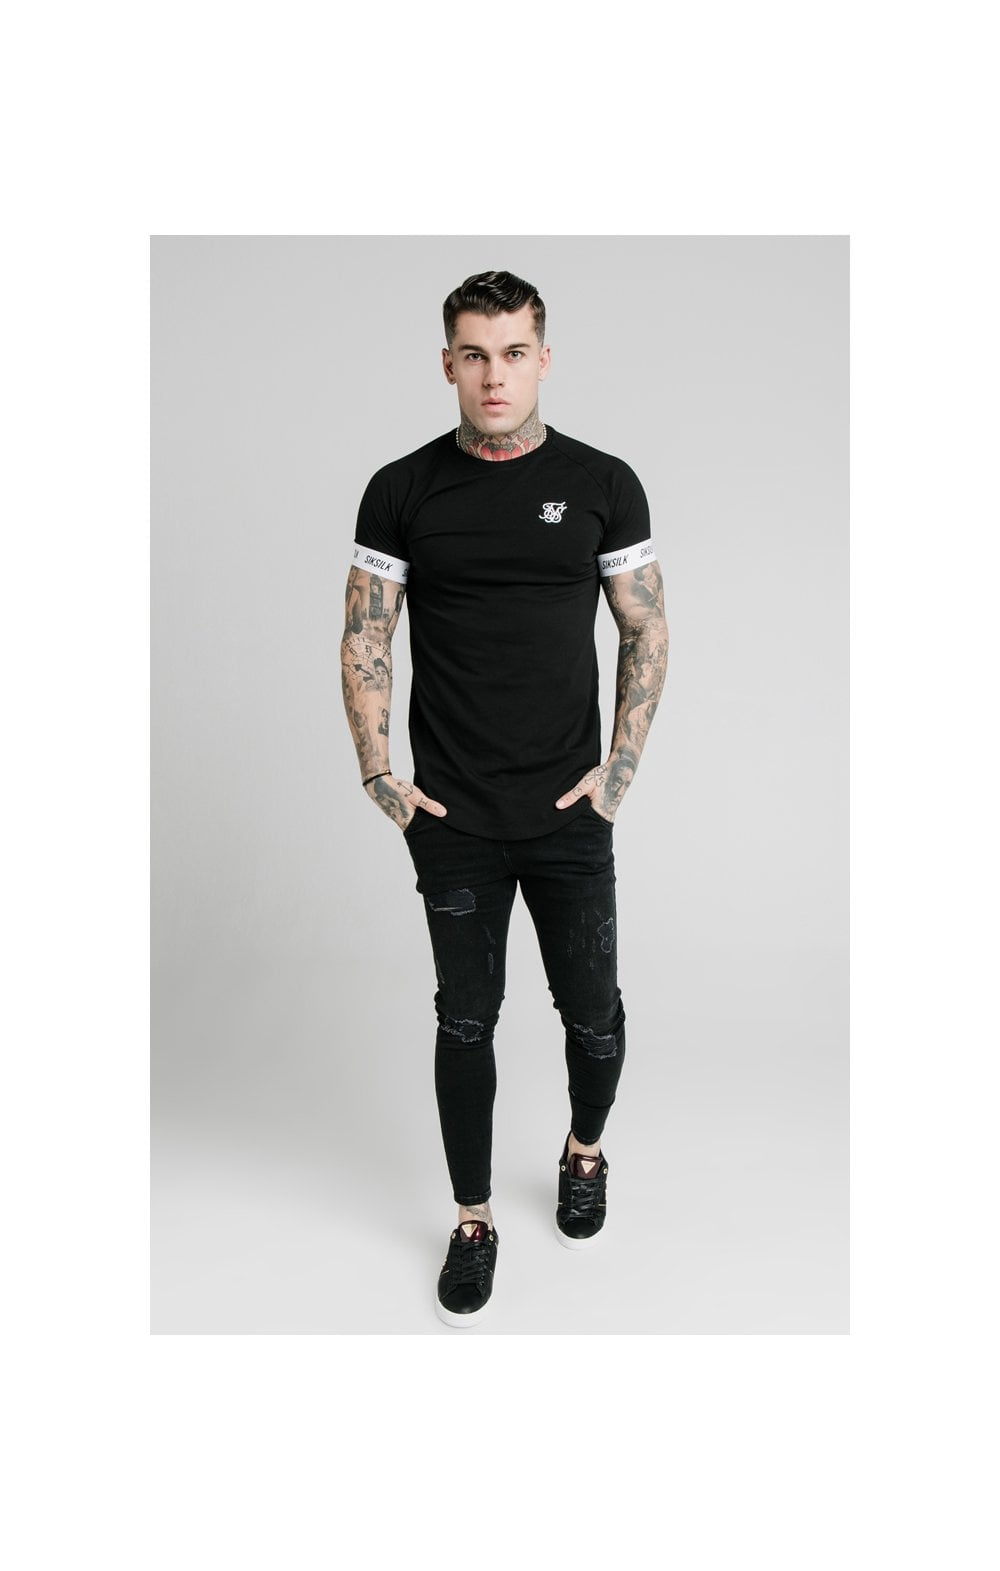 SikSilk S/S Raglan Tech Tee - Black (4)